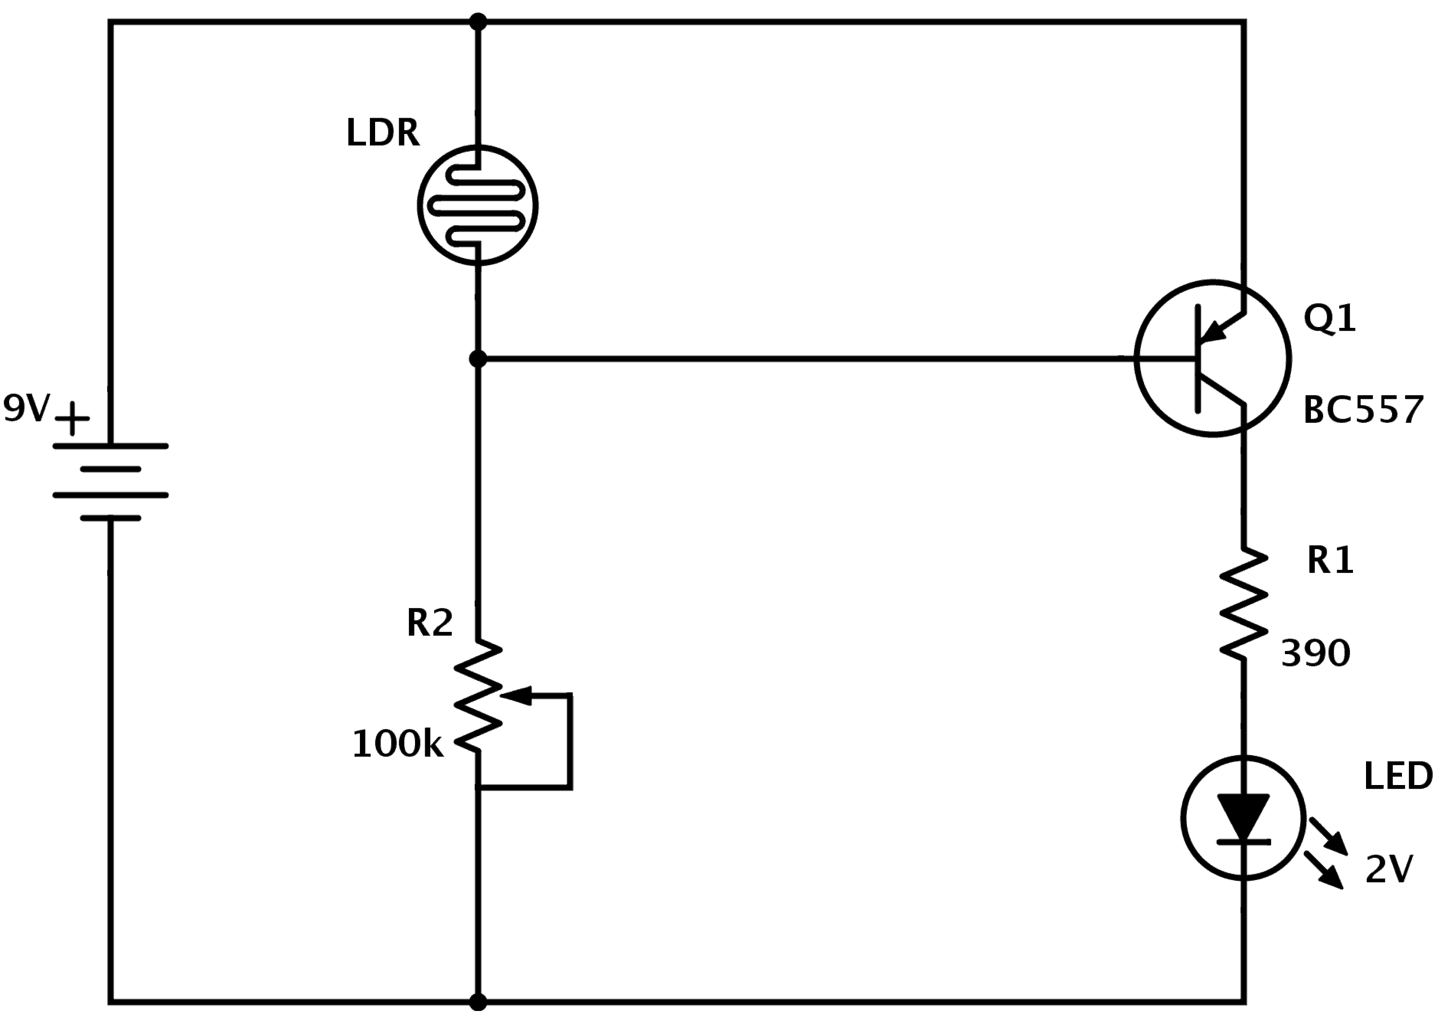 Ldr Circuit Diagram Build Electronic Circuits Of Led Light In Addition Dimmer With Pnp Transistor Dark Detector